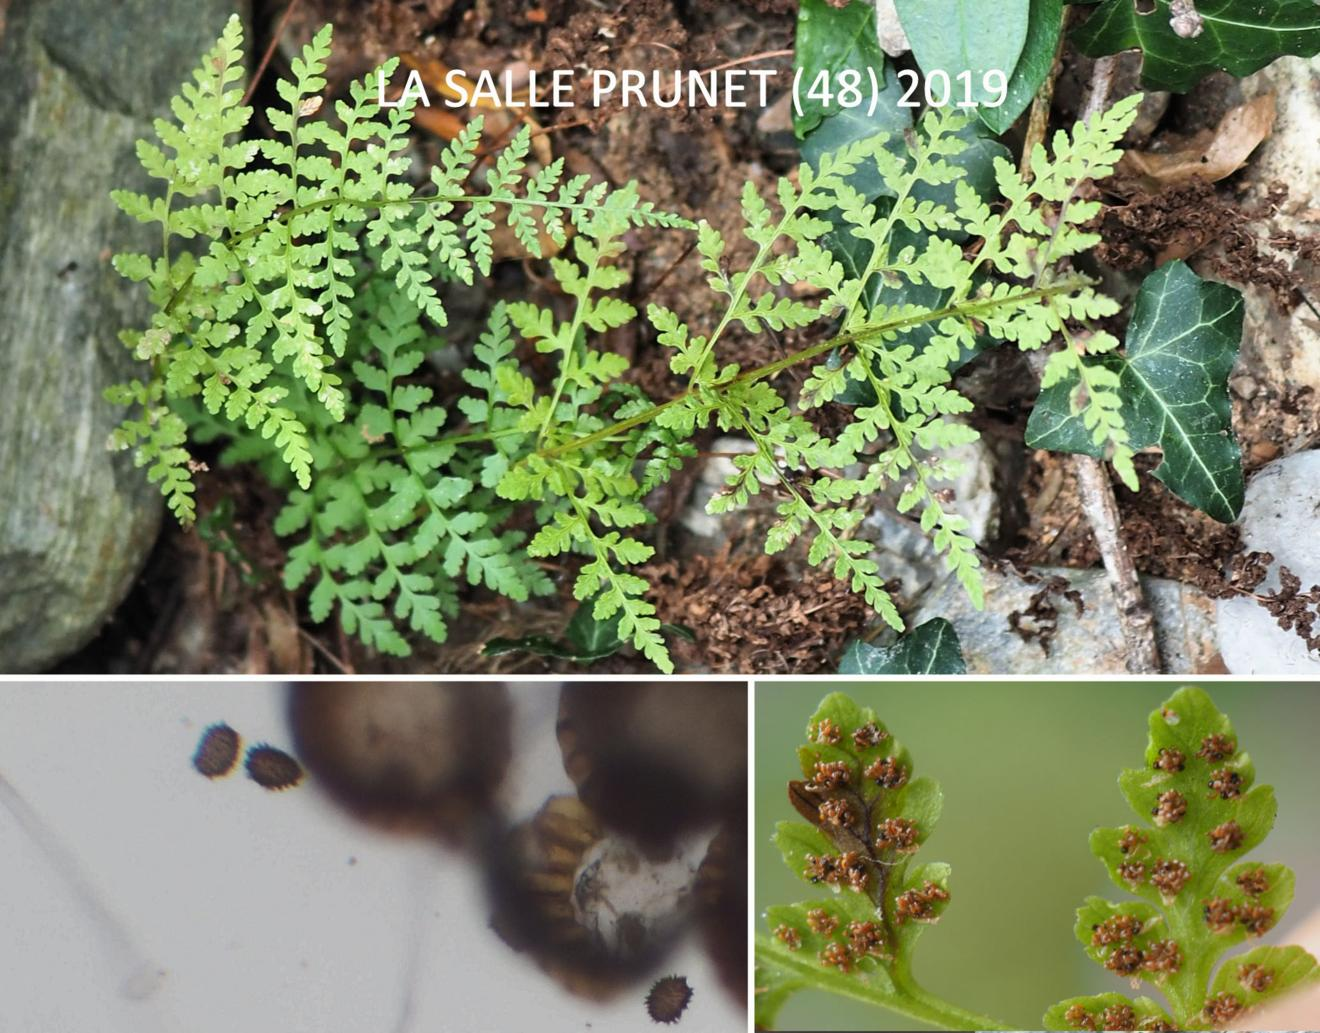 Fern, Brittle Bladder